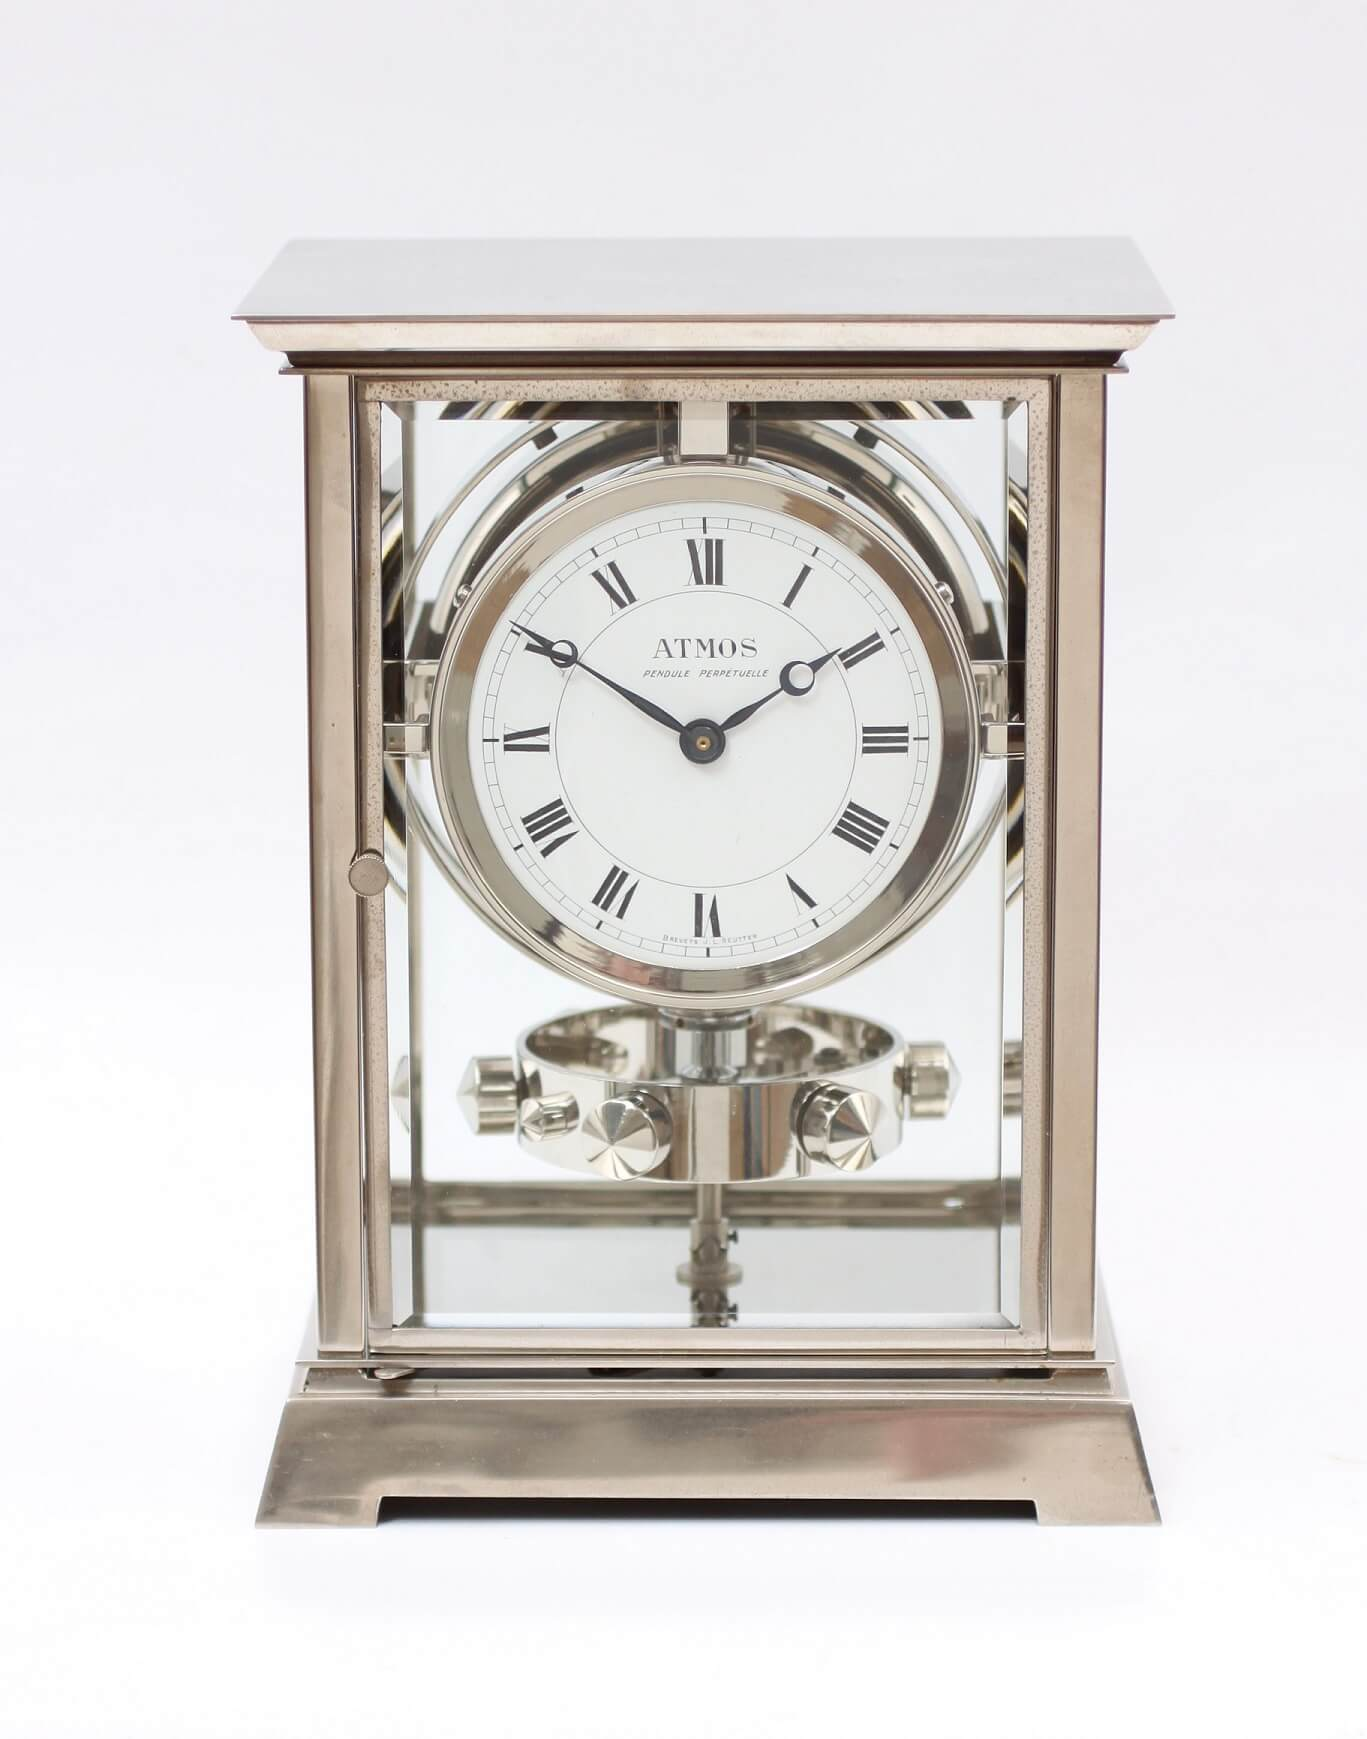 French-Reutter-nickel Plated-atmos Clock-Jean Louis Reutter-art Deco